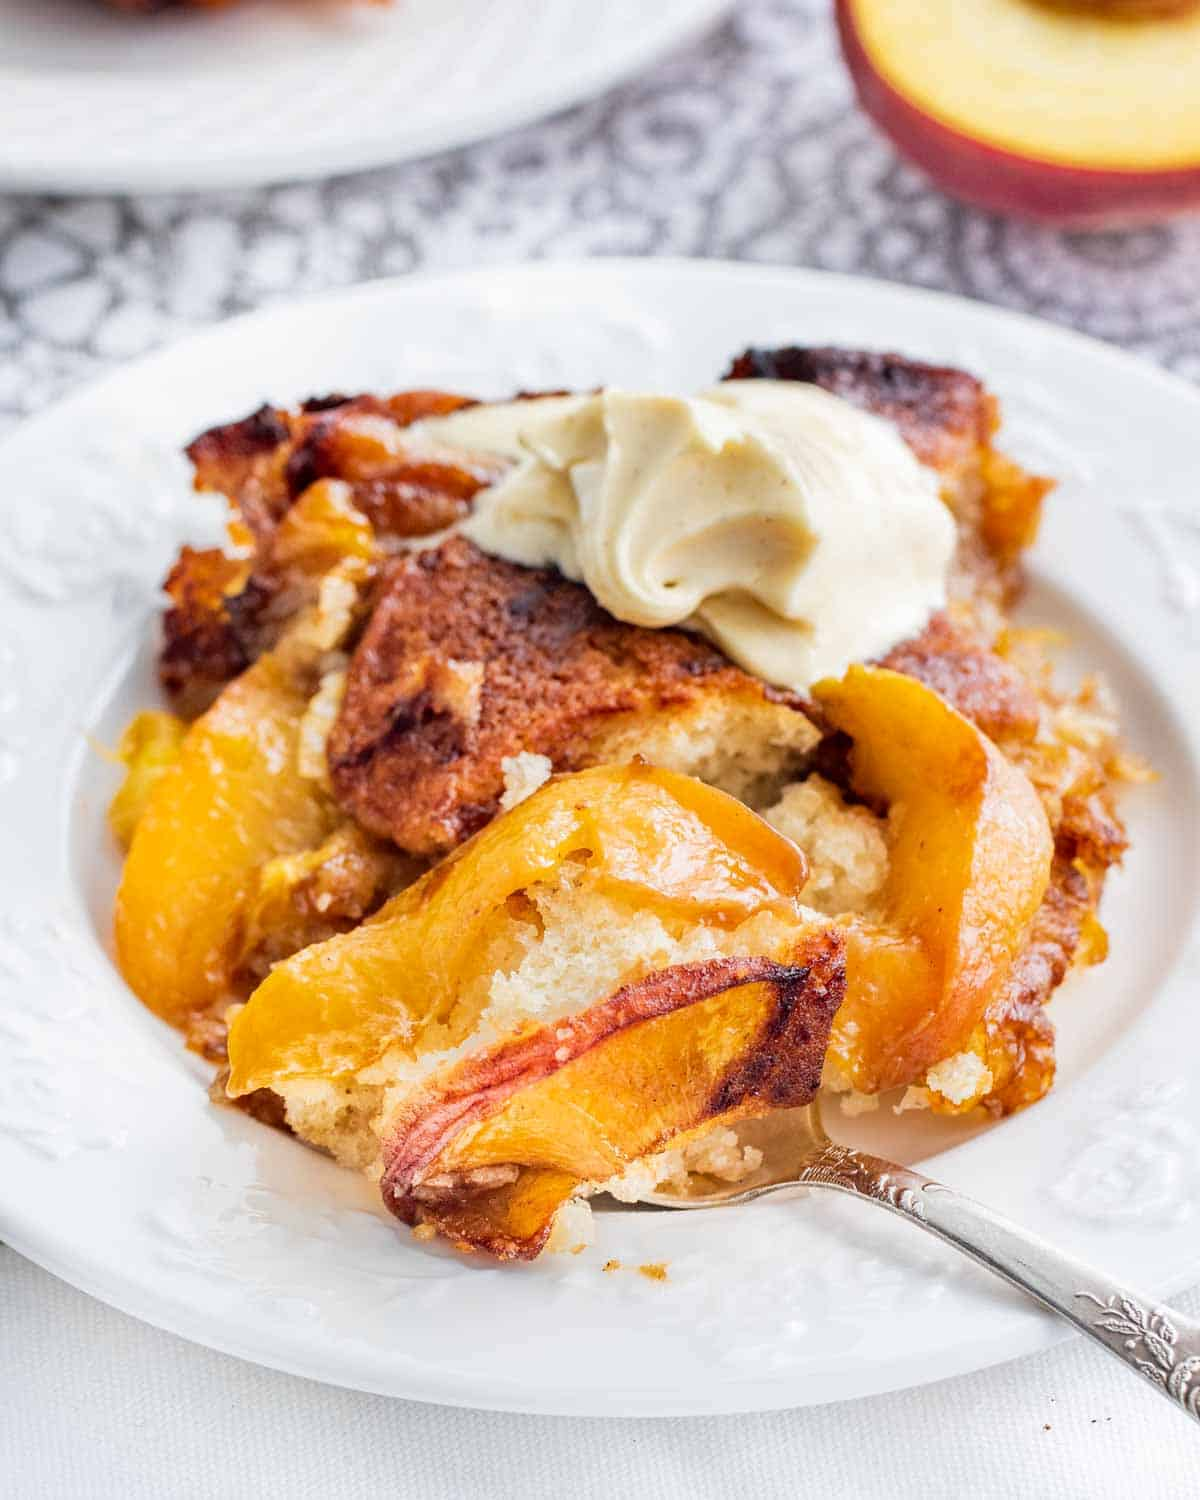 a piece of peach cobbler with a scoop of vanilla ice cream on a white plate with a spoon